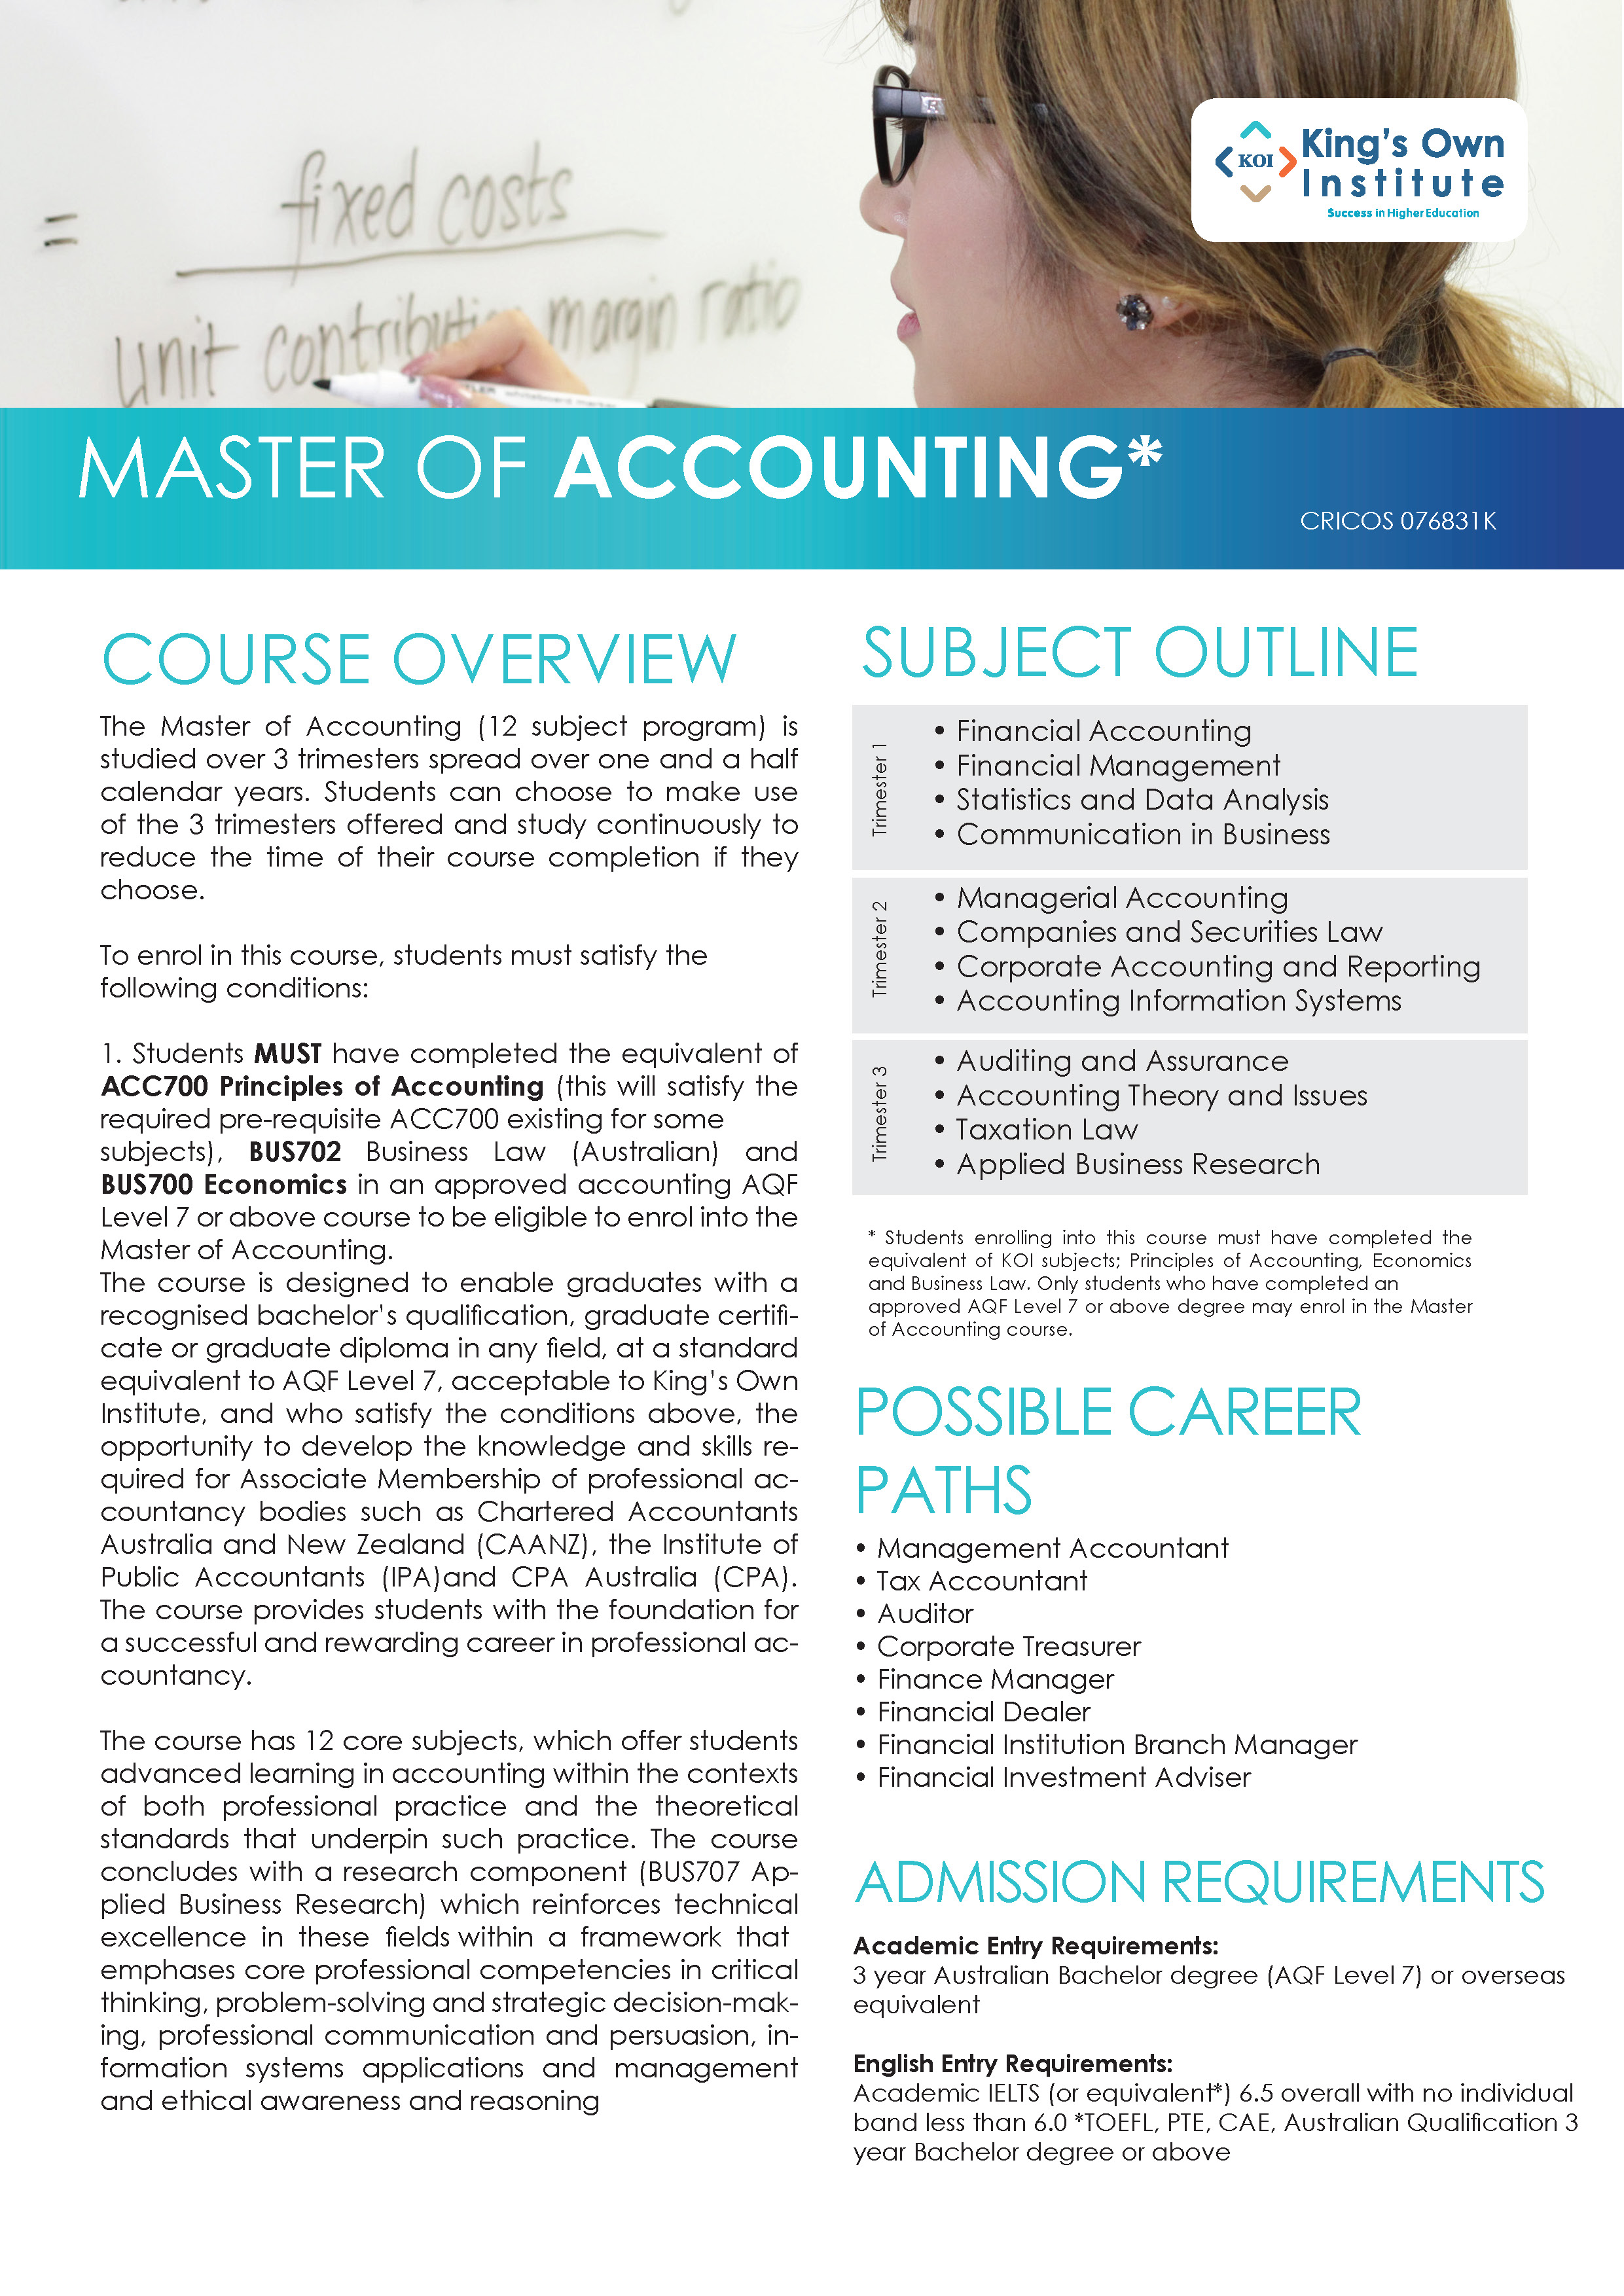 MASTER OF ACCOUNTING